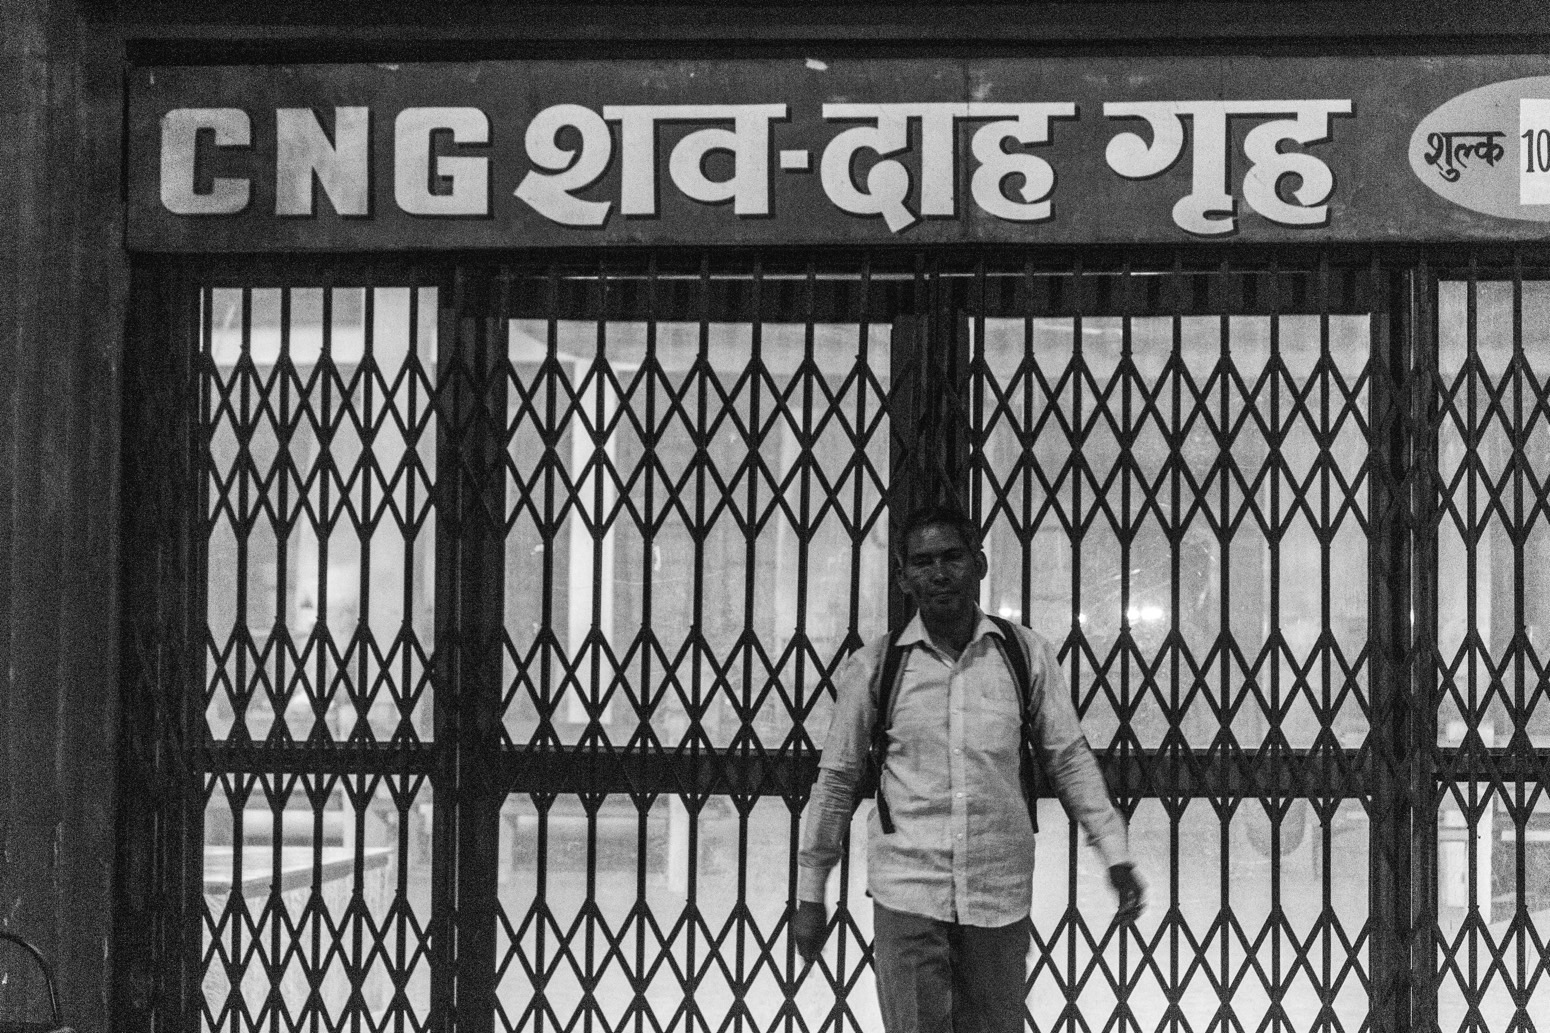 Rajinder Kumar, CNG worker, leaves for home after finishing the day's work. Credit: Wamika Singh